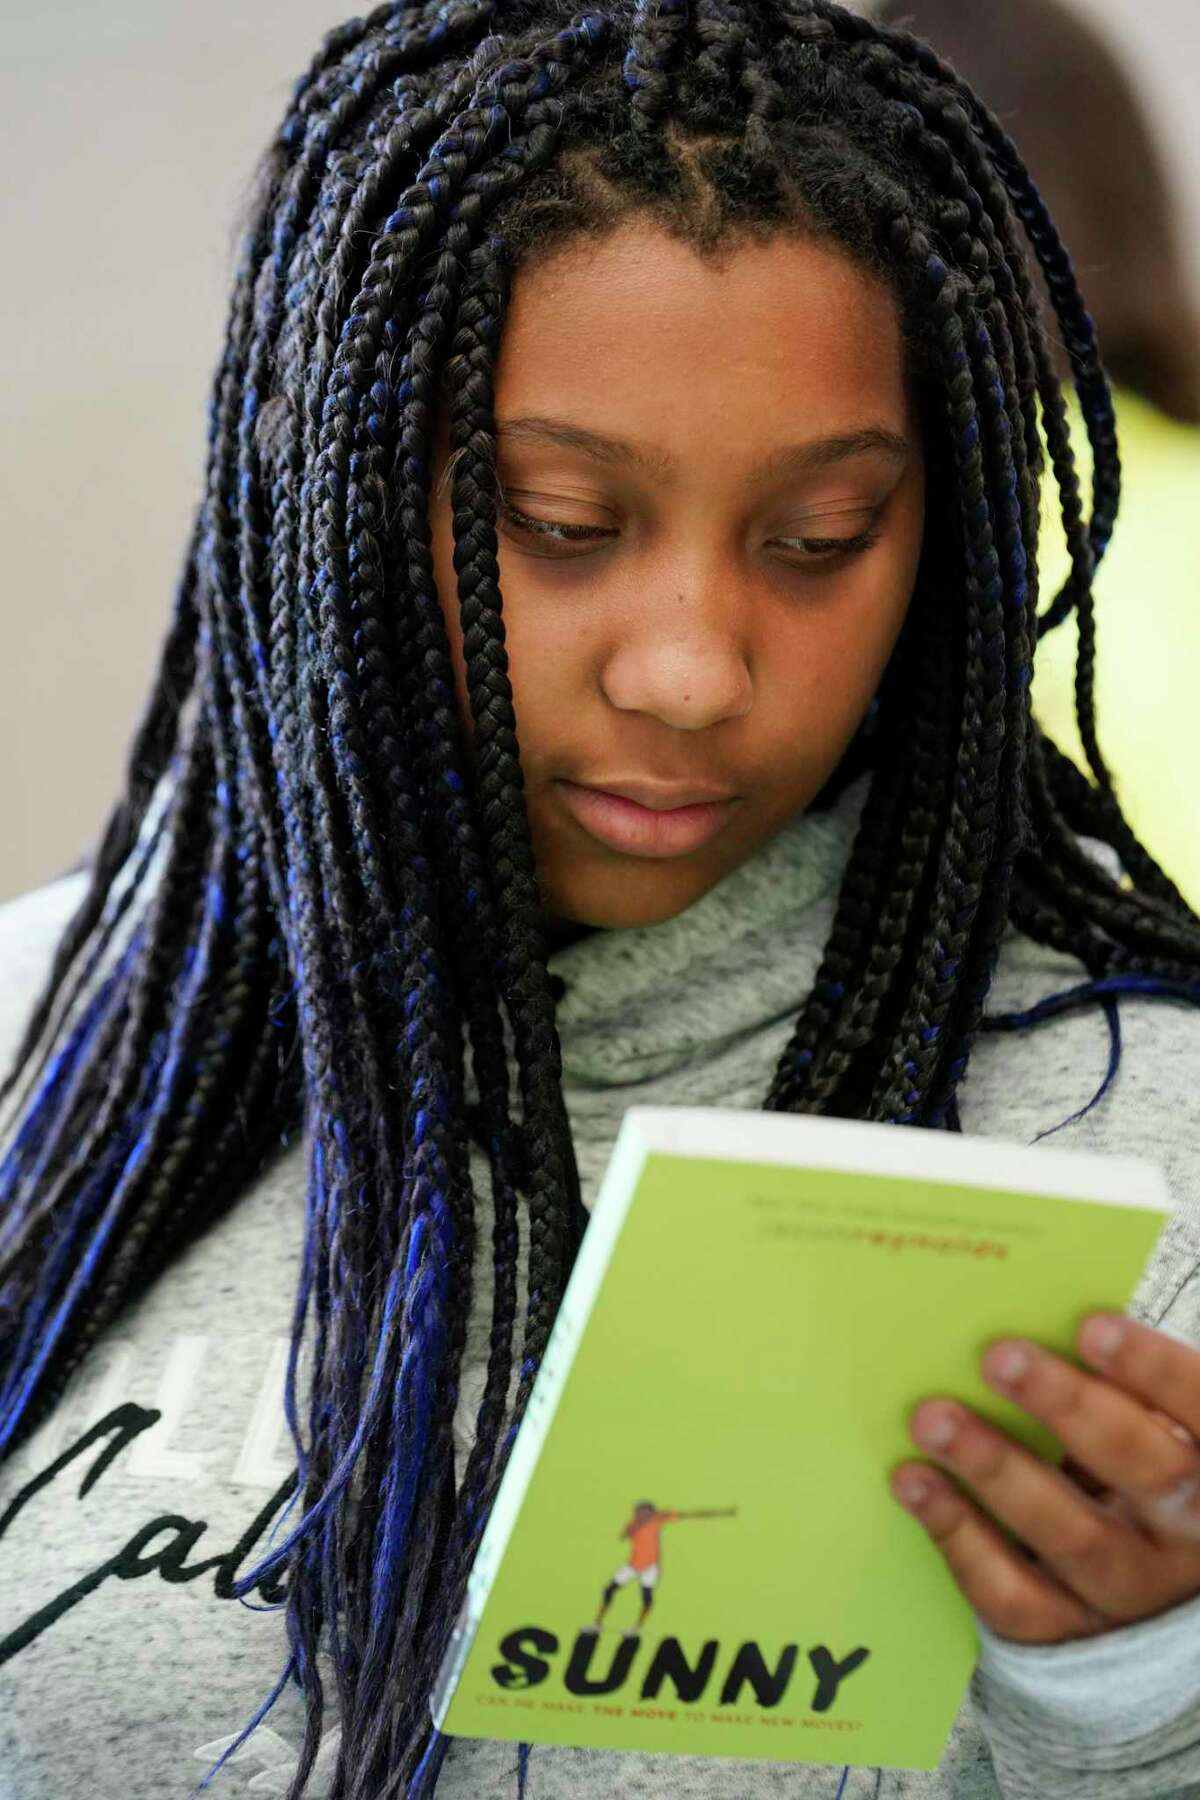 Taylor Biggers, 13, an eighth grader at Victory Lakes Intermediate in Clear Creek ISD looks a book during the Tweens Read Book Festival held at Pasadena Memorial High School, Saturday, Oct. 19, 2019, in Pasadena.